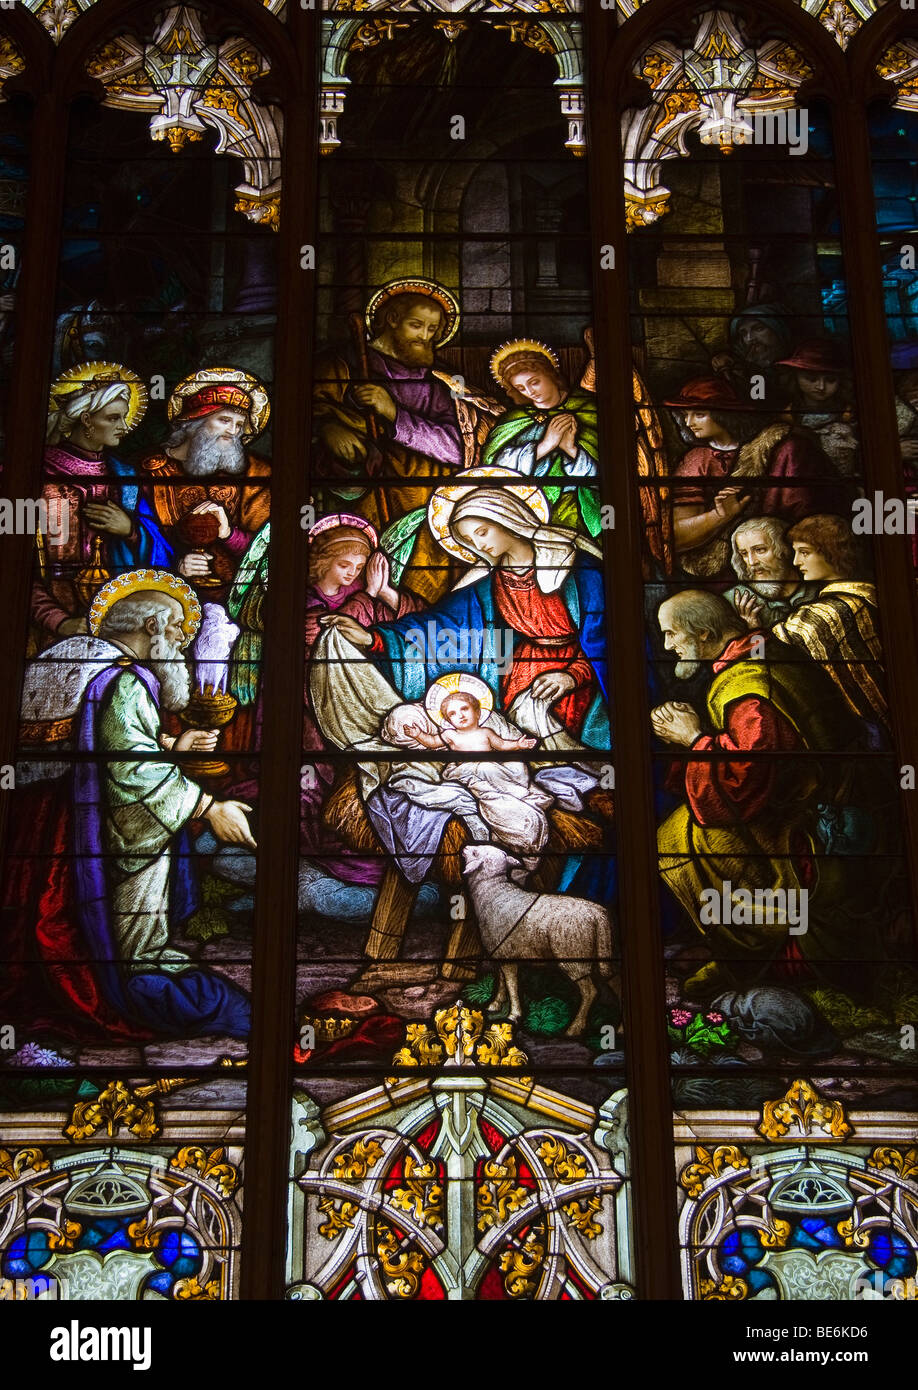 A Depiction Of The Nativity Of Jesus Christ In Stained